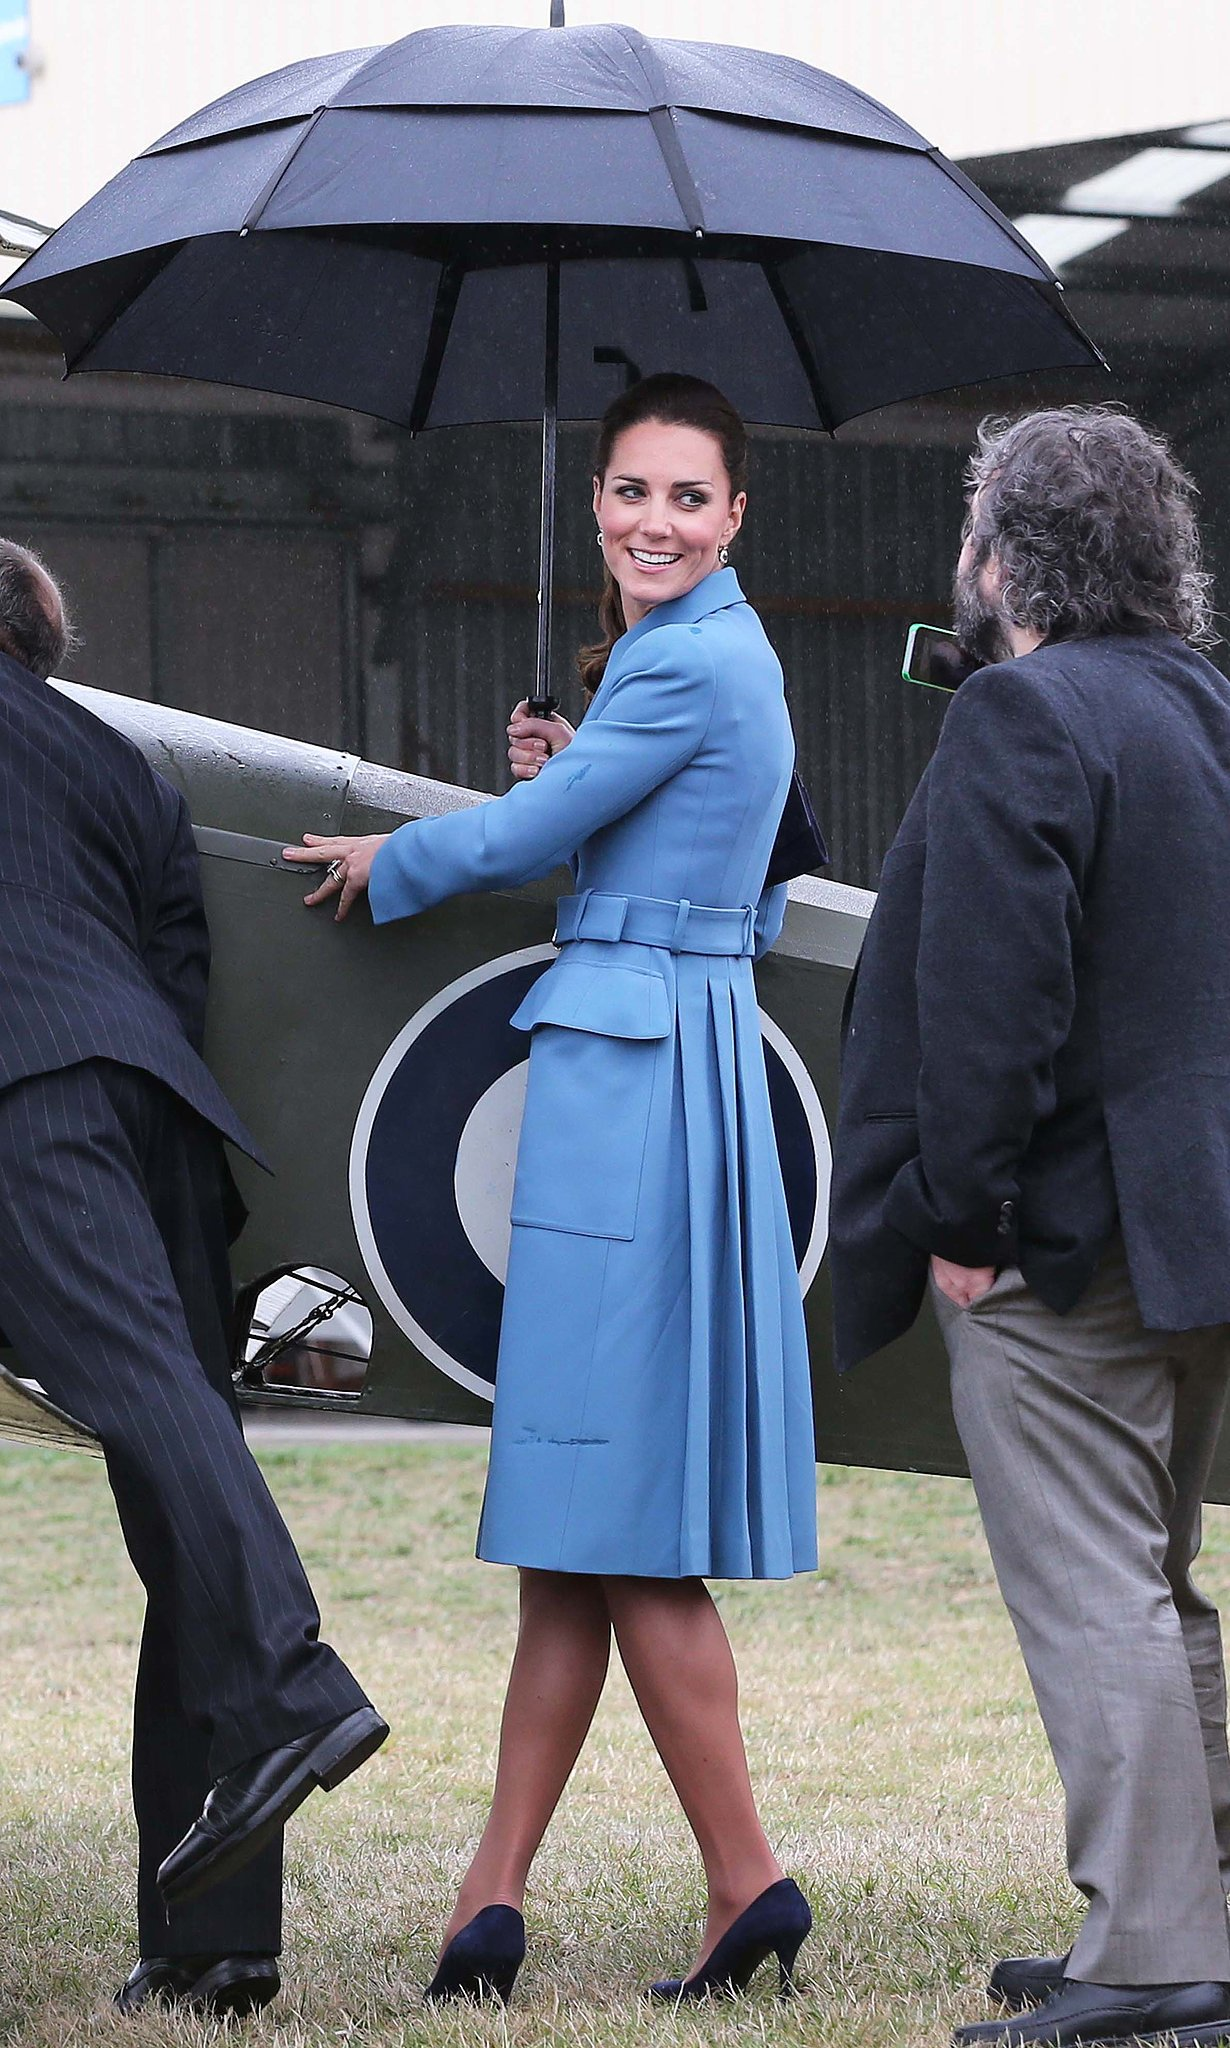 The duchess posed for a photo for none other than Peter Jackson during a visit to New Zealand in April 2014.